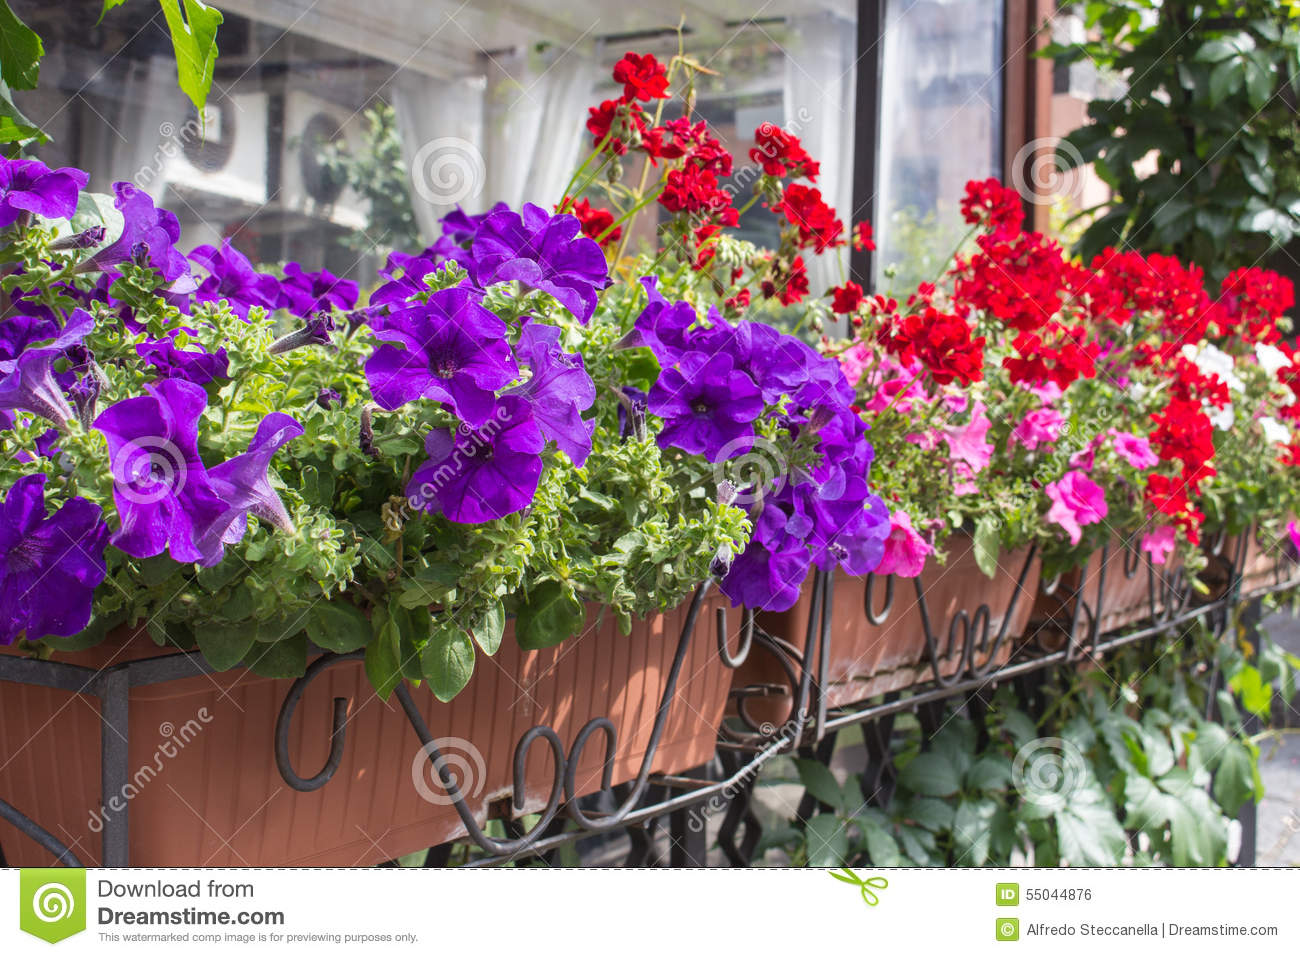 Balcony flower boxes filled with flowers royalty free for Balcony flowers